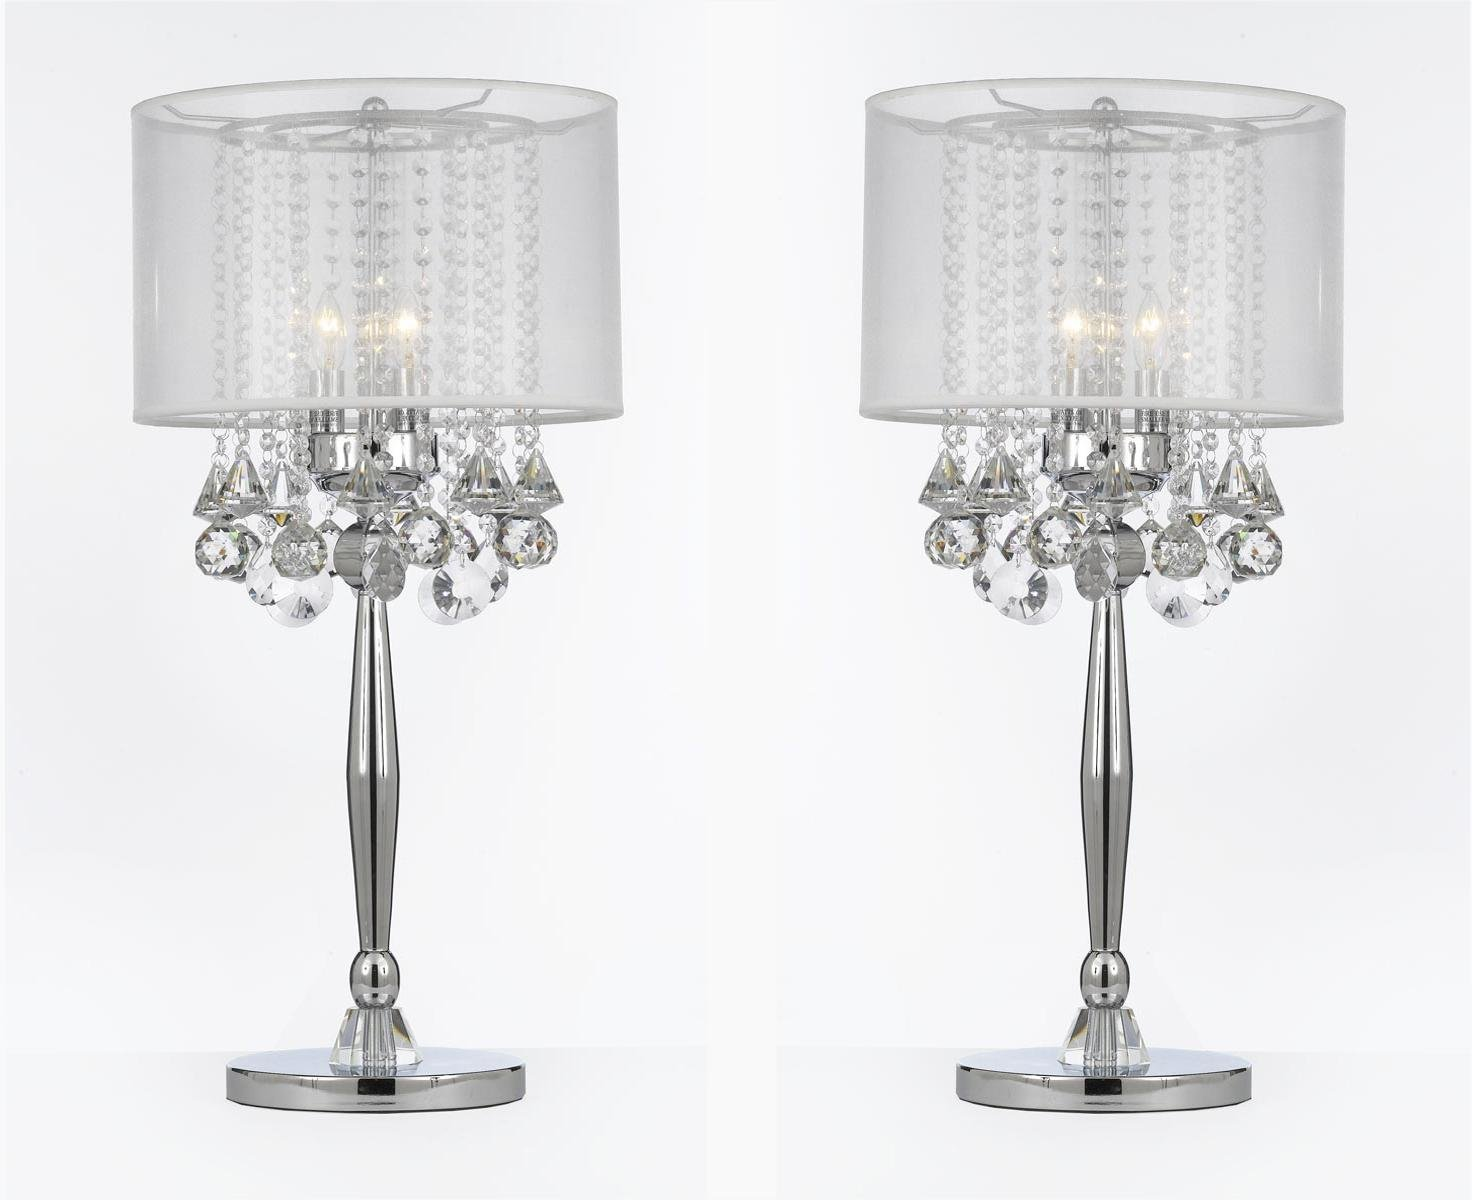 Set of 2 Silver Mist 3 Light Chrome Crystal Table Lamp with White Shade Transitional Contemporary Modern Lamp